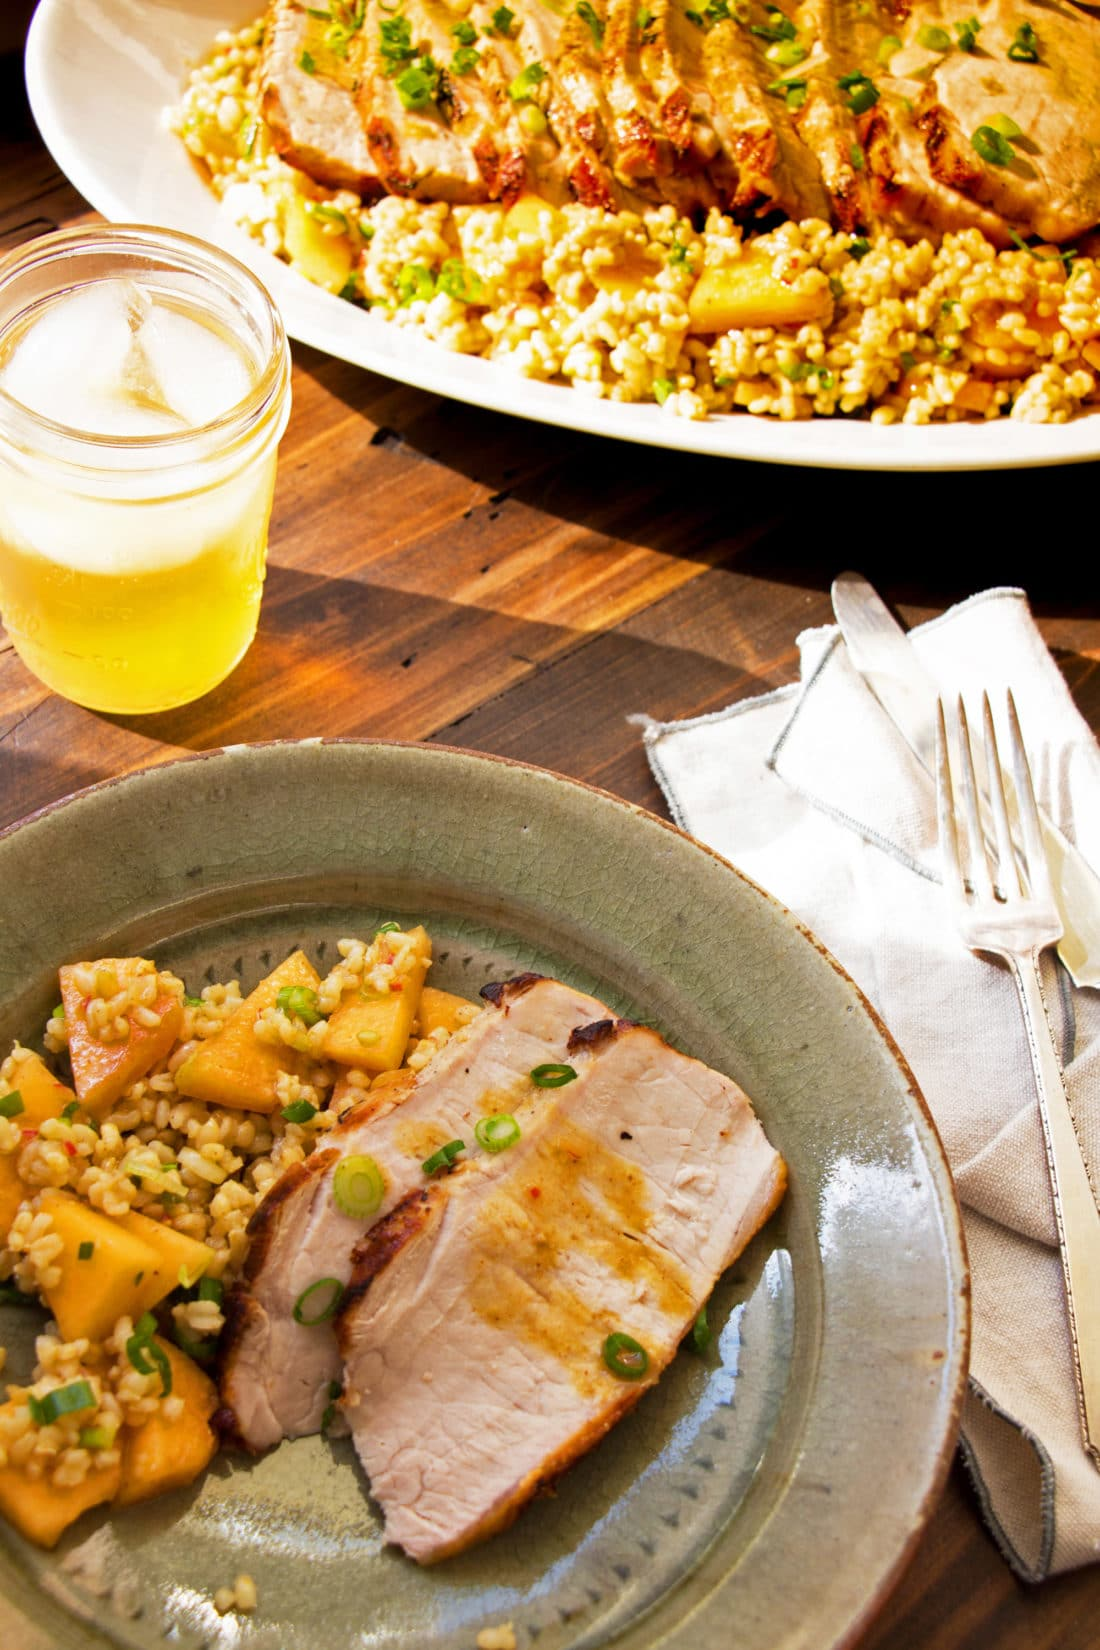 Grilled Pork Loin with Brown Rice Salad / Photo by Mandy Maxwell / Katie Workman / themom100.com